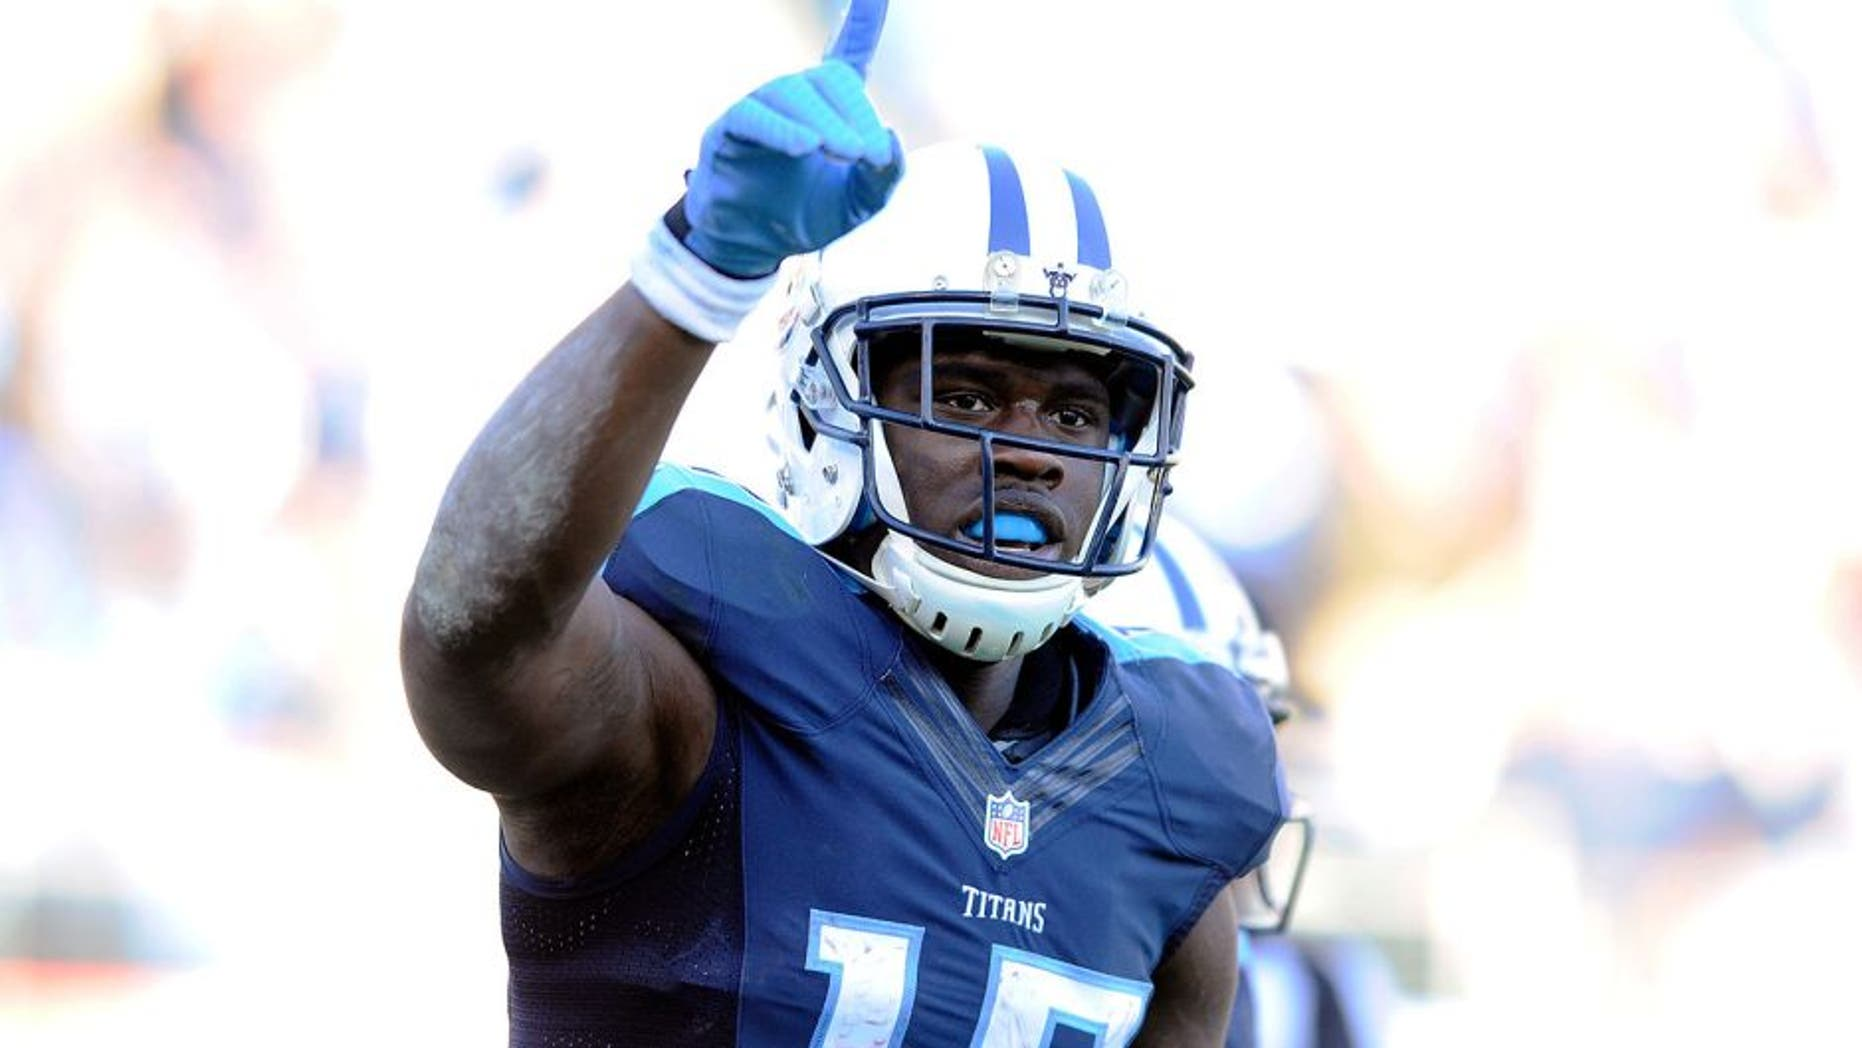 Dec 6, 2015; Nashville, TN, USA; Tennessee Titans receiver Dorial Green-Beckham (17) celebrates after scoring a touchdown after a reception during the second half against the Jacksonville Jaguars at Nissan Stadium. The Titans won 42-39. Mandatory Credit: Christopher Hanewinckel-USA TODAY Sports